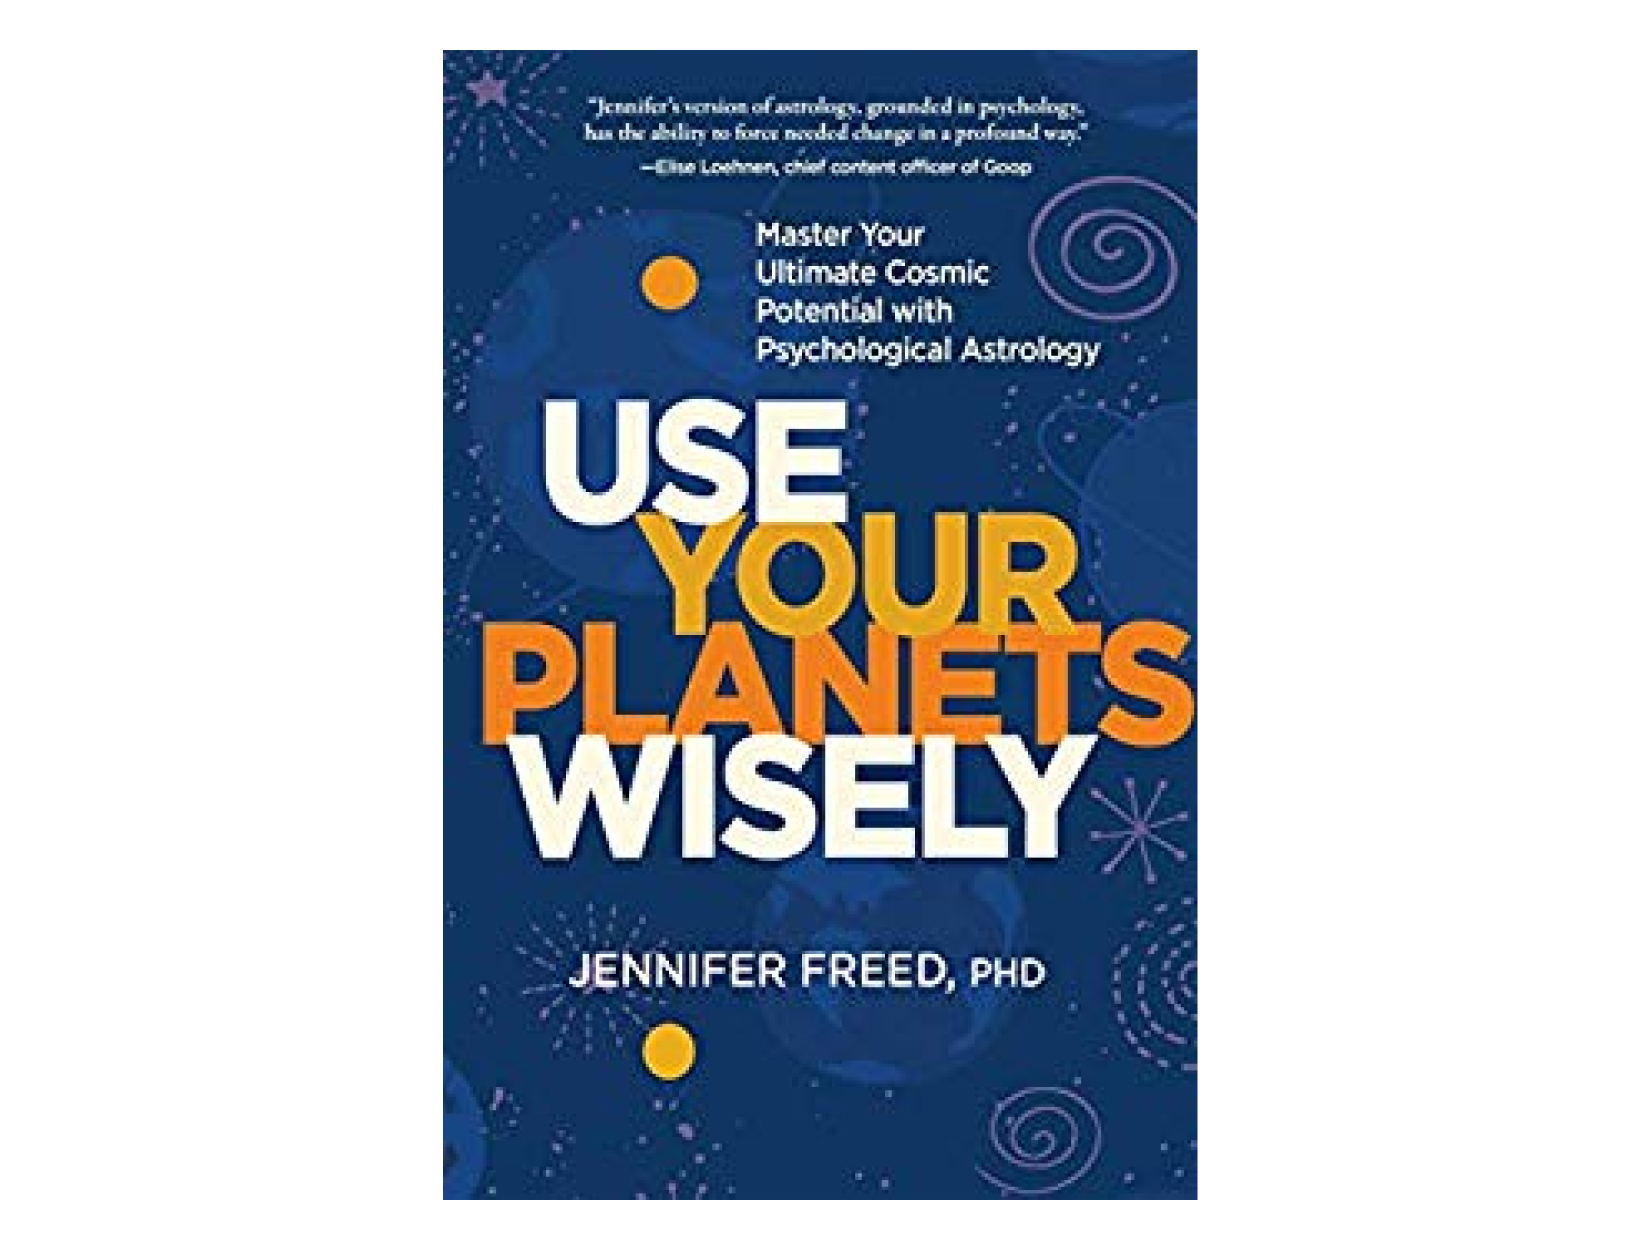 <em>Use Your Planets Wisely</em> by Jennifer Freed, PhD